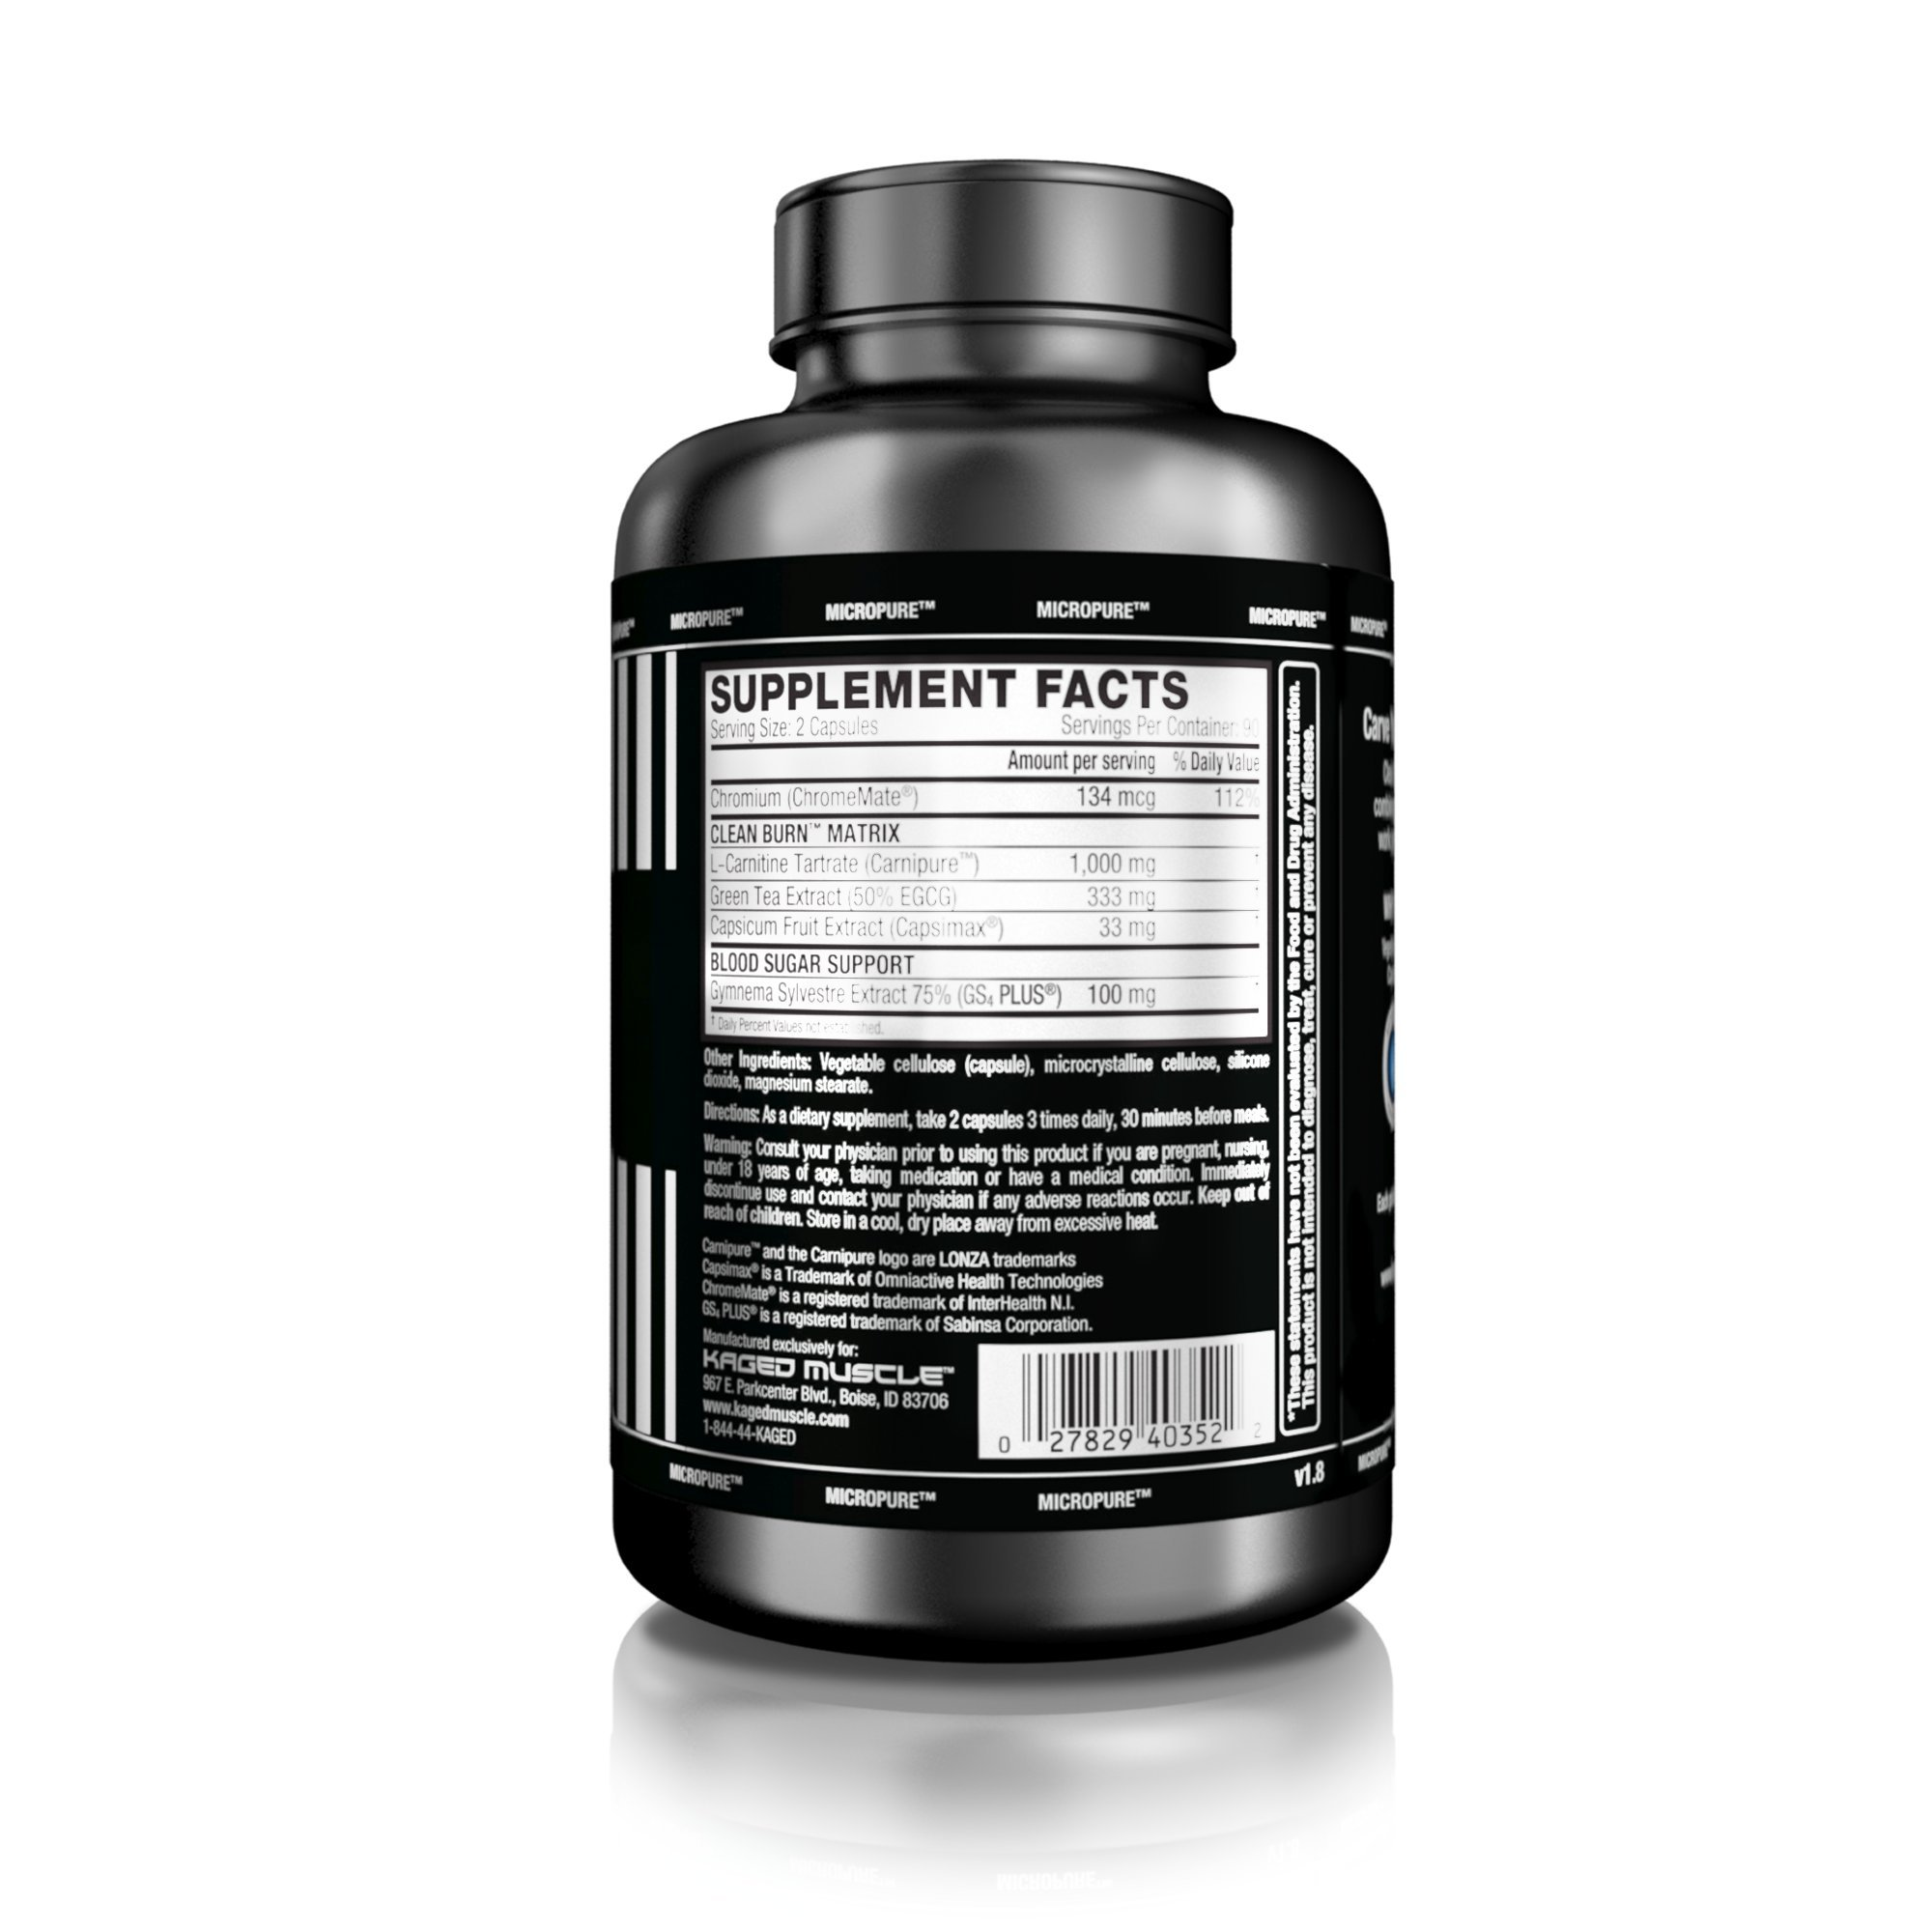 Kaged Muscle, Clean Burn Stimulant-Free Weight Loss Supplement for Men & Women, 180 Veggie Diet Pills by Kaged Muscle (Image #2)